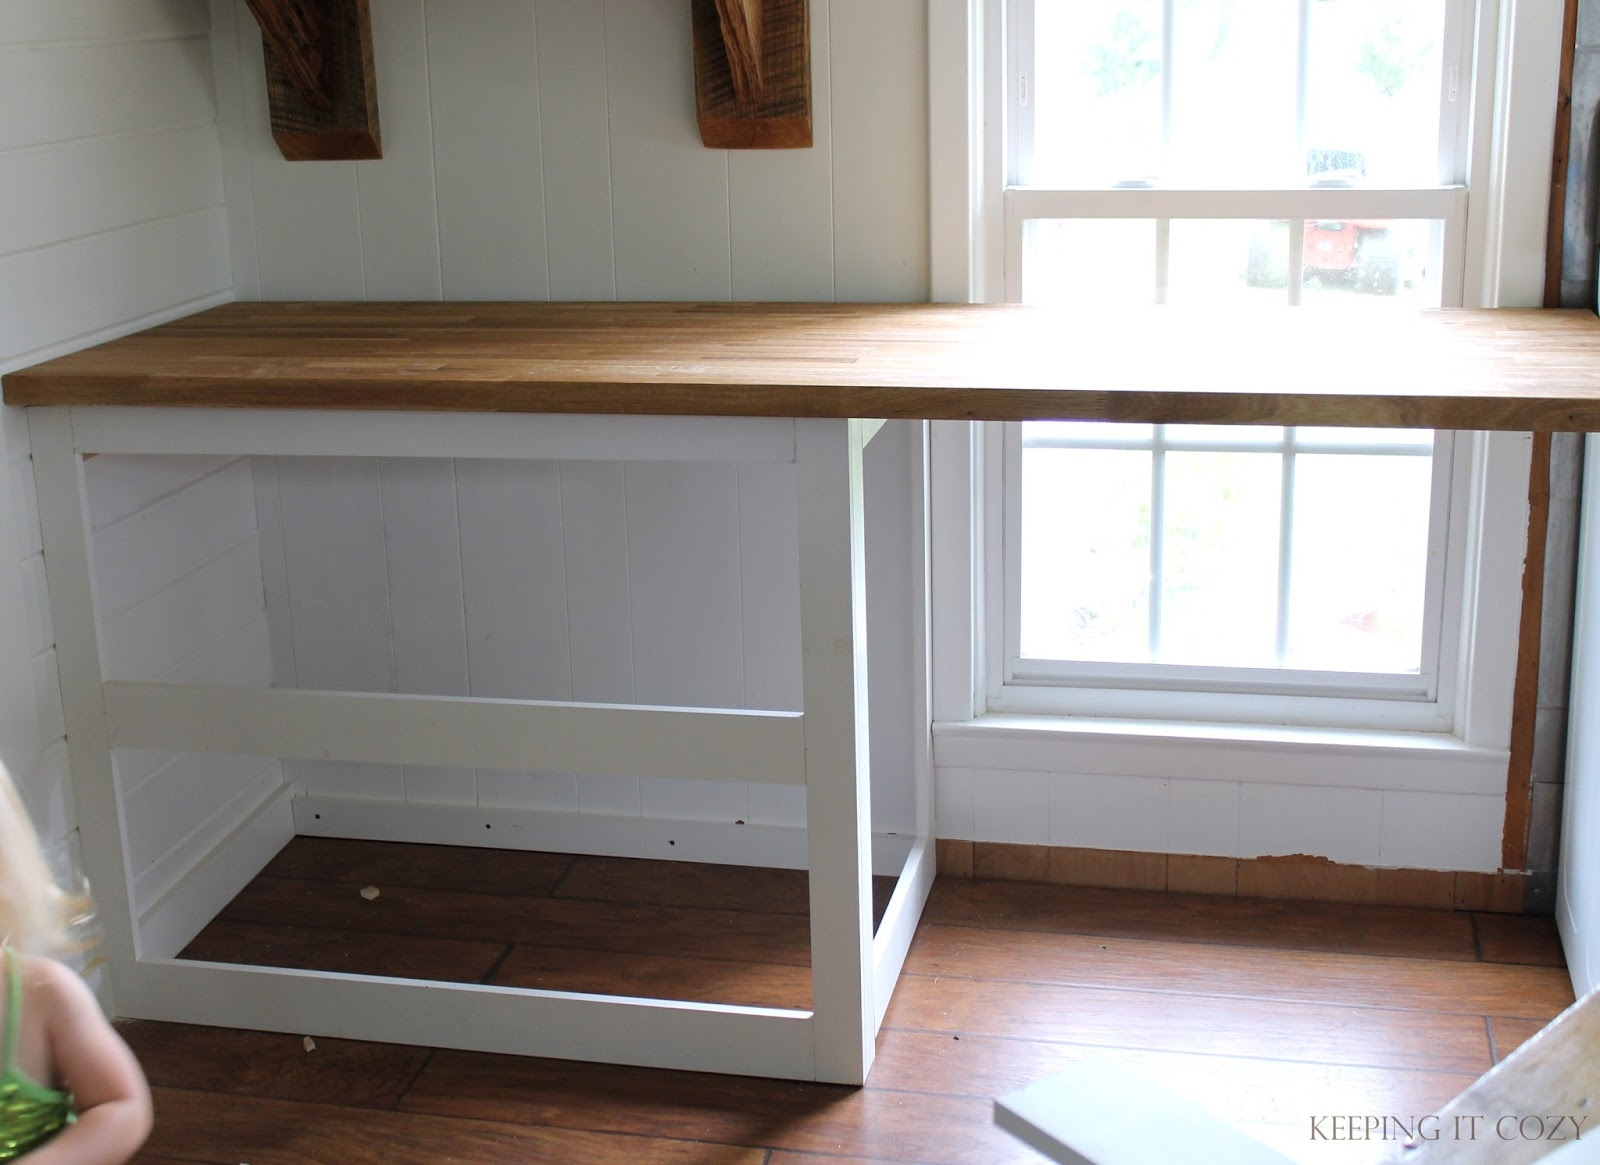 Kitchen Countertop Without Cabinets Underneath